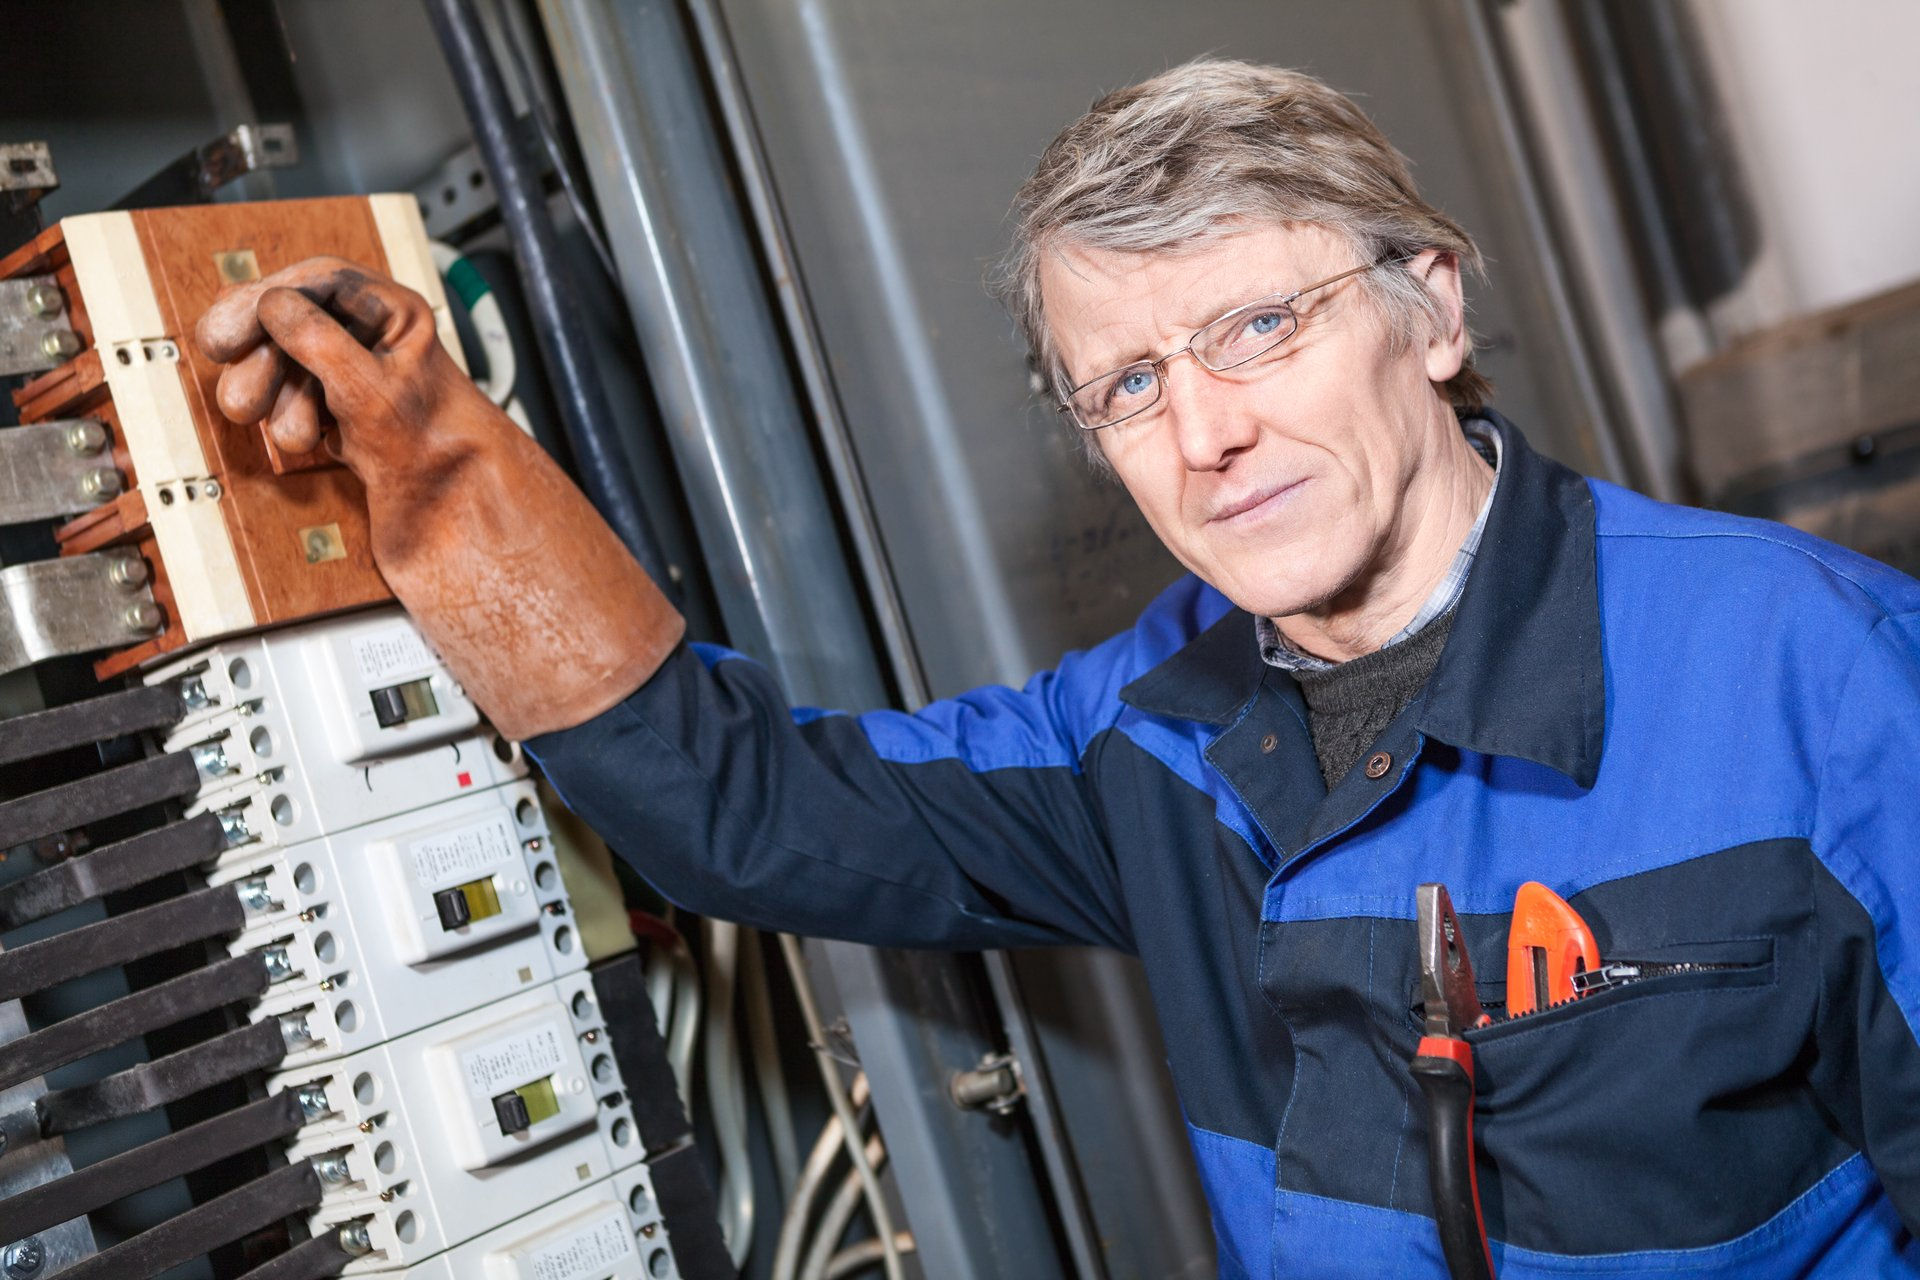 A senior electrician at work